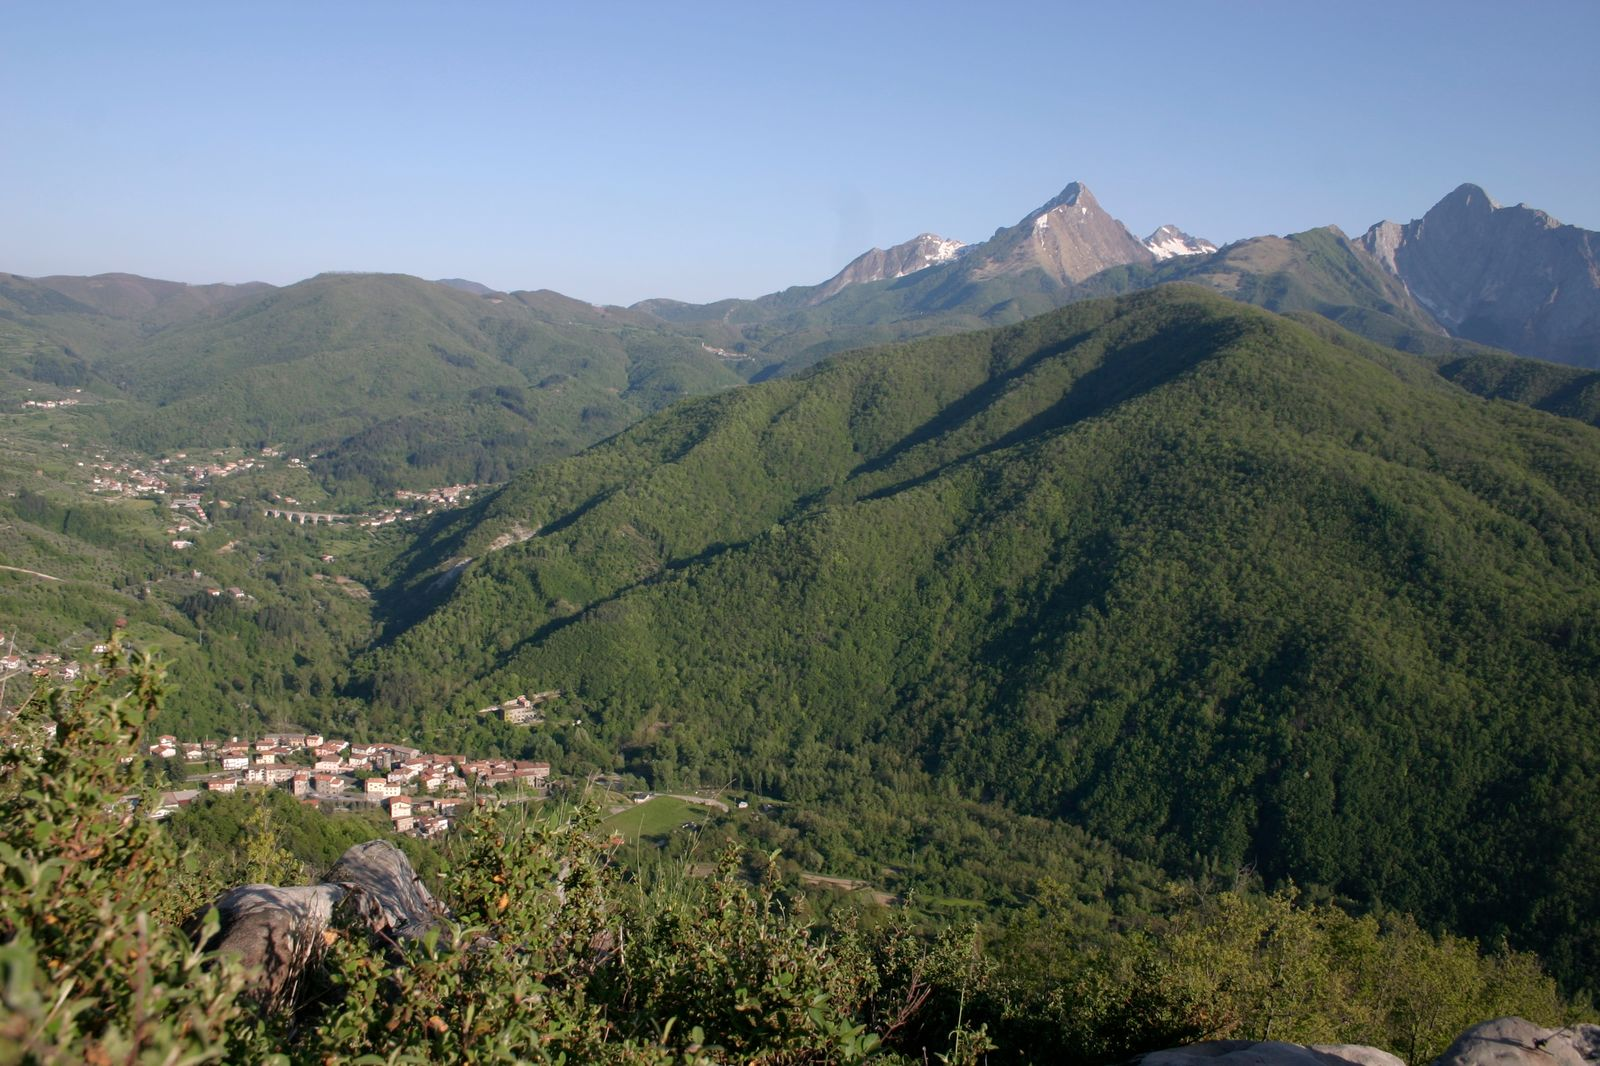 Casola in Lunigiana - The gateway to the Apuan Alps